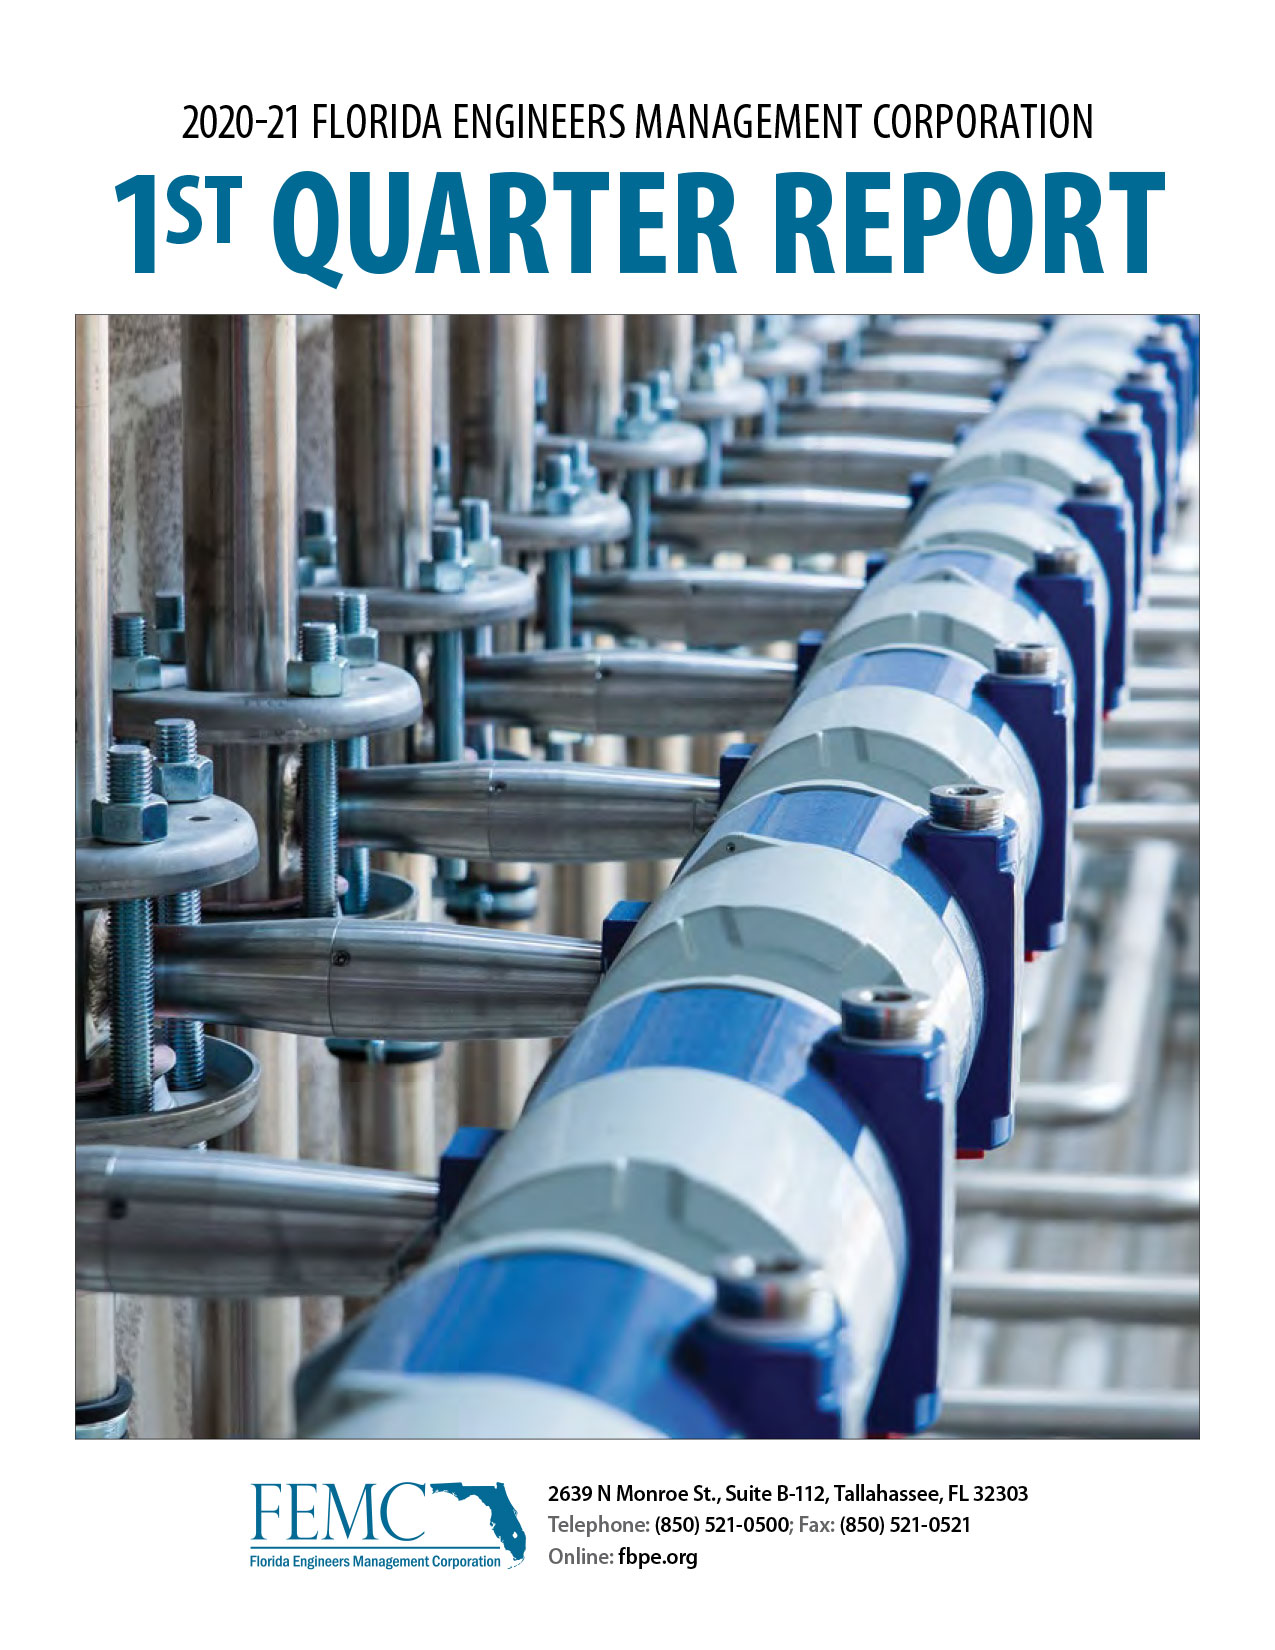 Cover of the 2020-21 Florida Engineers Management Corporation 1st Quarter Report